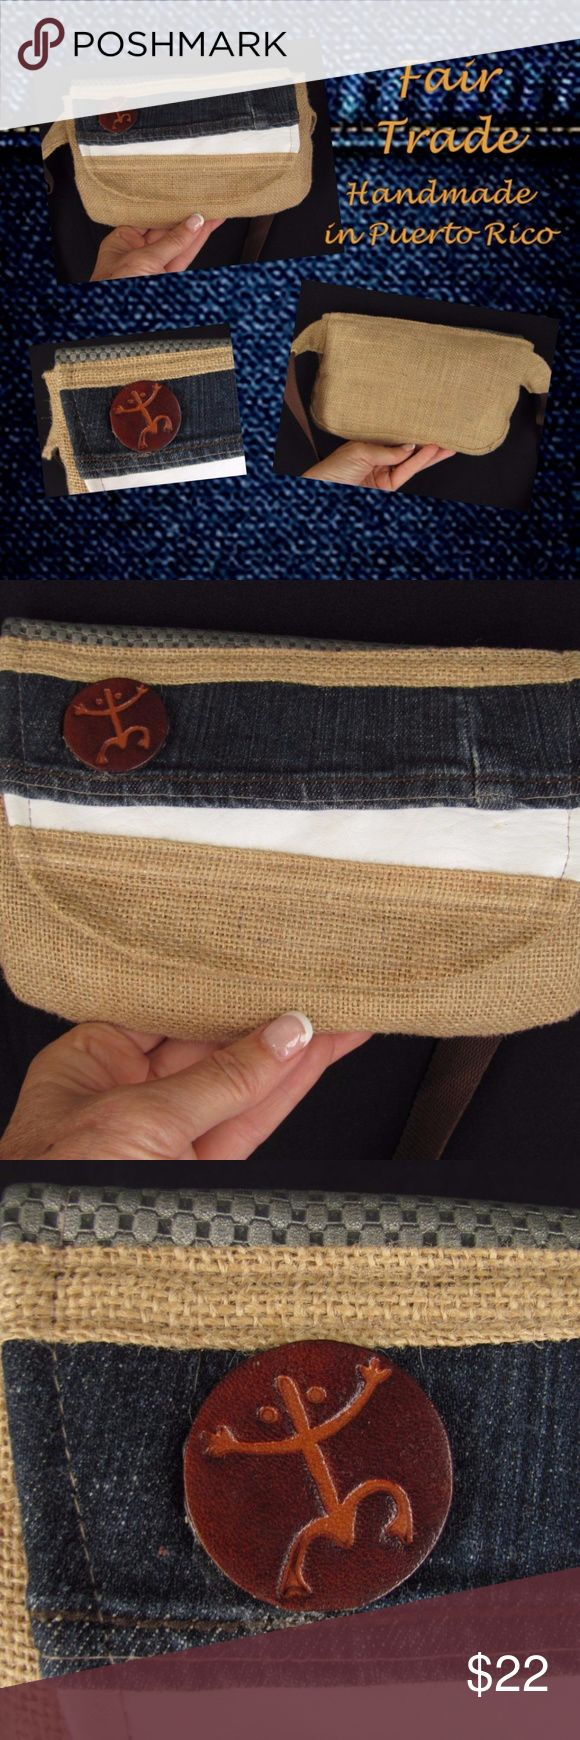 "Denim Burlap Leather FAIR TRADE Handcrafted Purse Cute and functional one of a kind waist pack (fanny pack) purse. Handmade in Puerto Rico by a craftswoman! This textile purse is made of burlap, leather and denim and is fully lined. The flap closure is secured with velcro. Inside is 1 open top pocket. It has an adjustable web belt with quick release buckle. New.  9 1/4"" long x 6"" high x 1"" deep  10x14 170628-1000-Purses Handcrafted Bags Travel Bags"